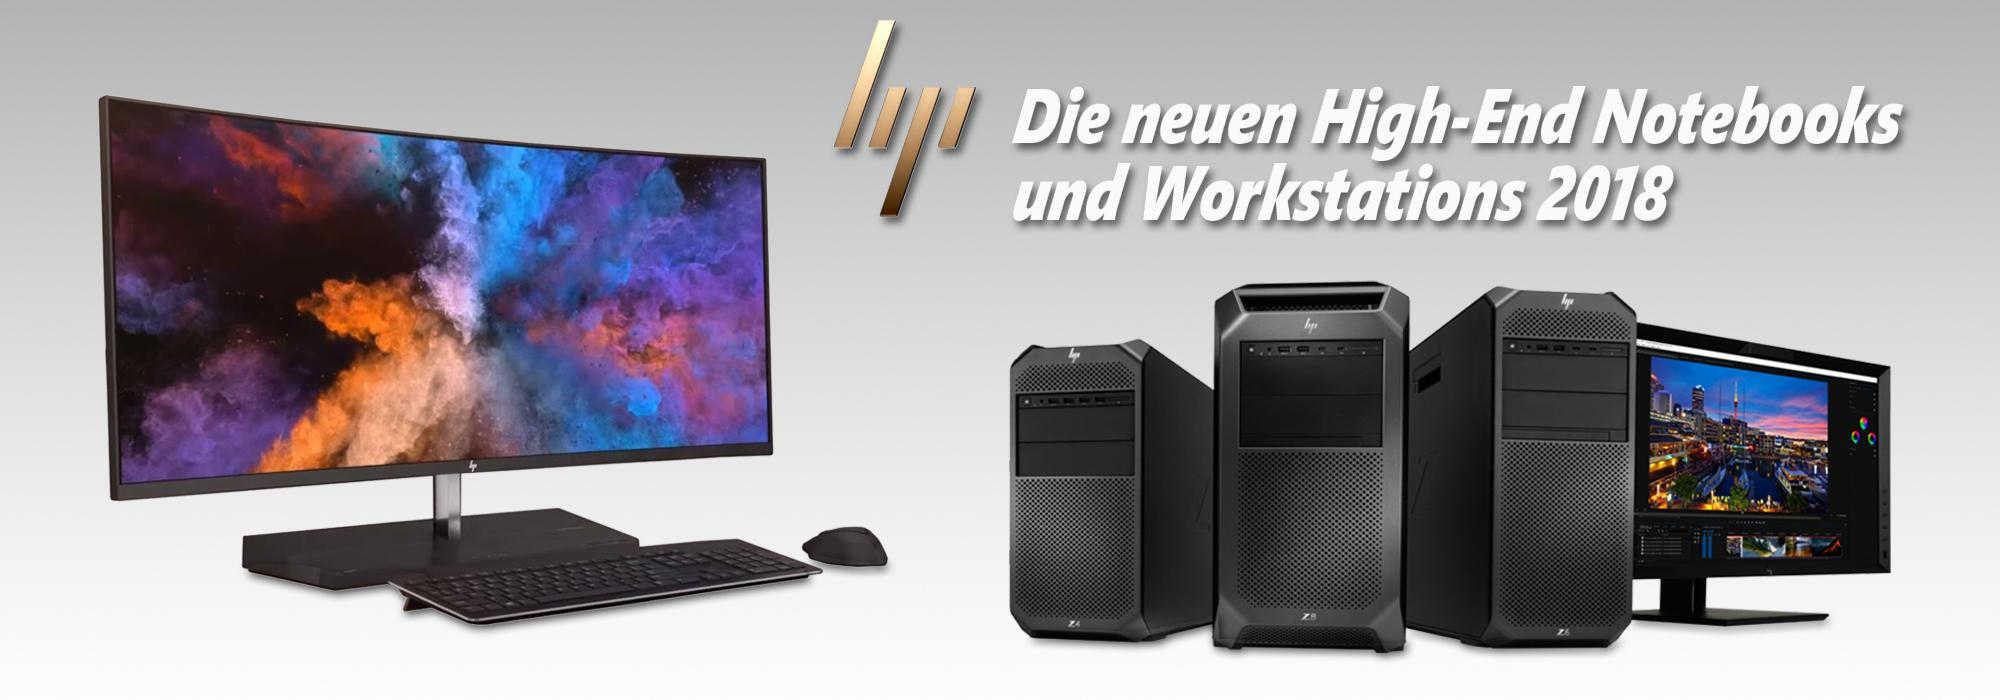 Die neuen High-End Notebooks, Clients, Workstations